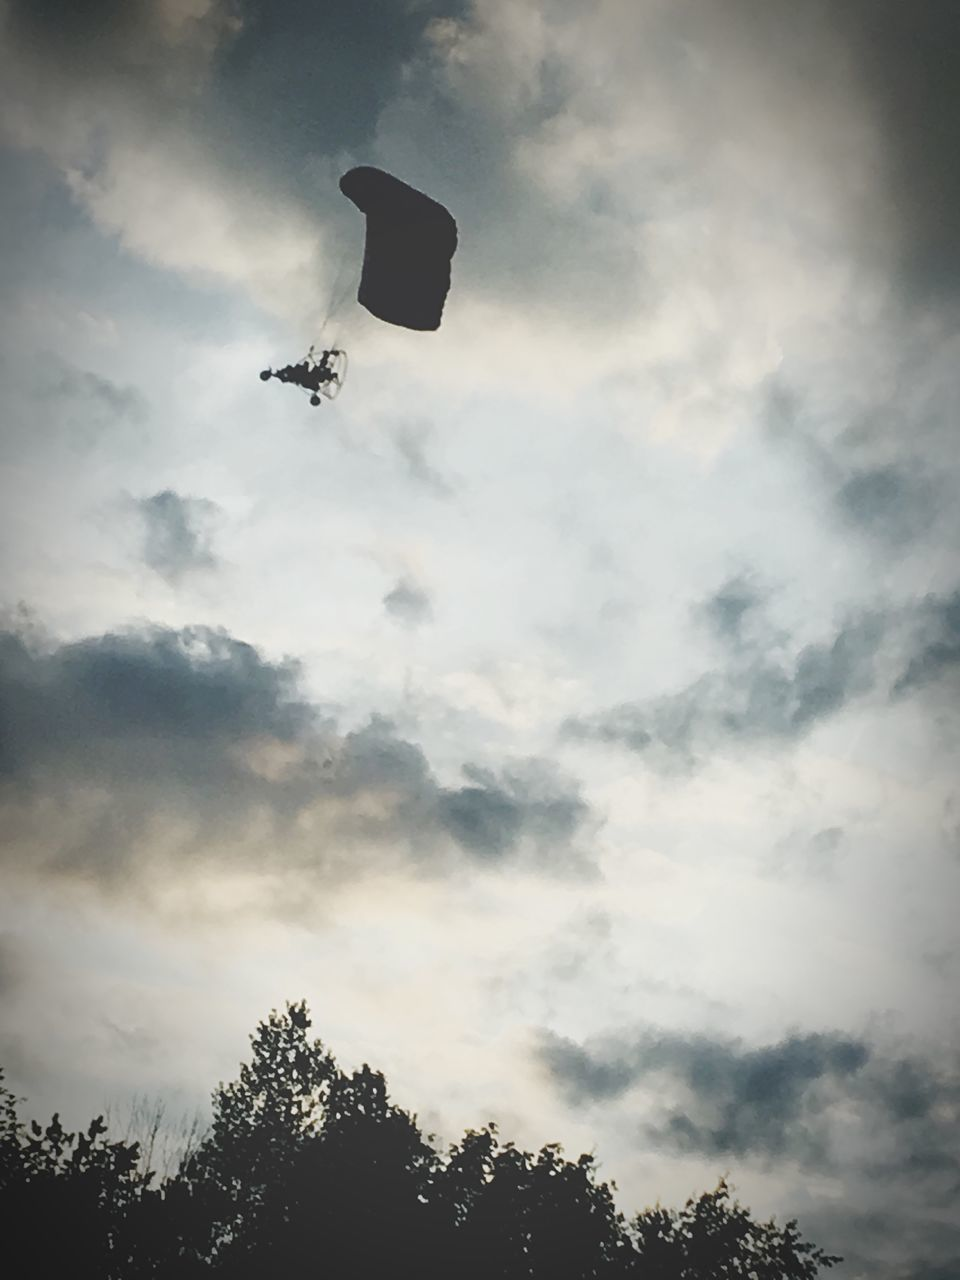 low angle view, tree, mid-air, sky, adventure, silhouette, cloud - sky, flying, outdoors, day, nature, parachute, extreme sports, sport, one person, paragliding, beauty in nature, people